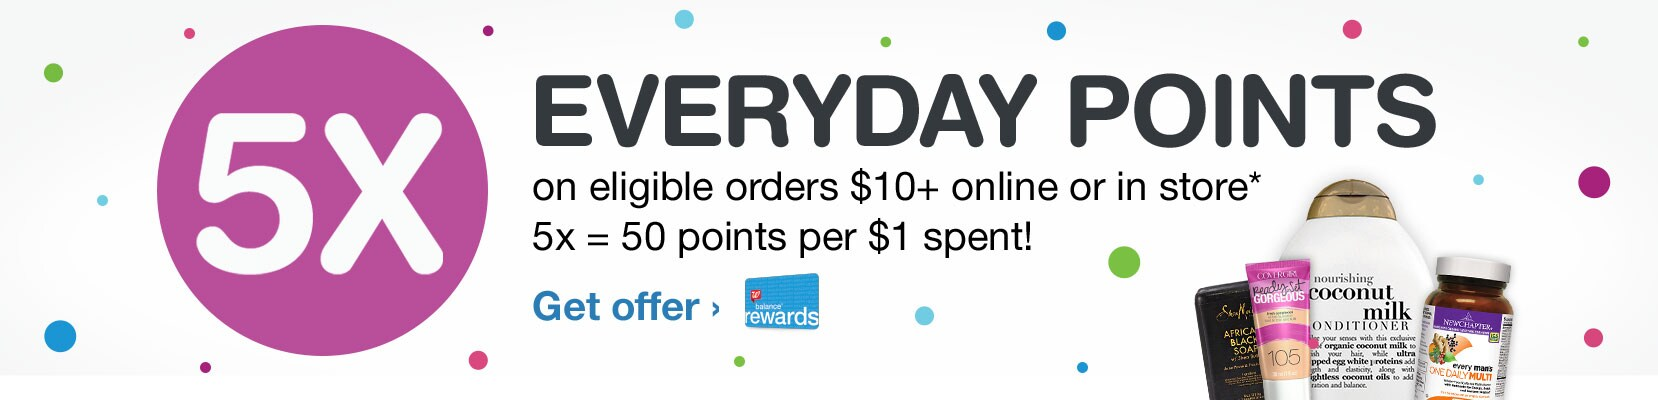 5X Everyday Points on eligible orders $10+ online or in store.* 5x = 50 points per $1 spent! Balance(R) Rewards. Get offer.